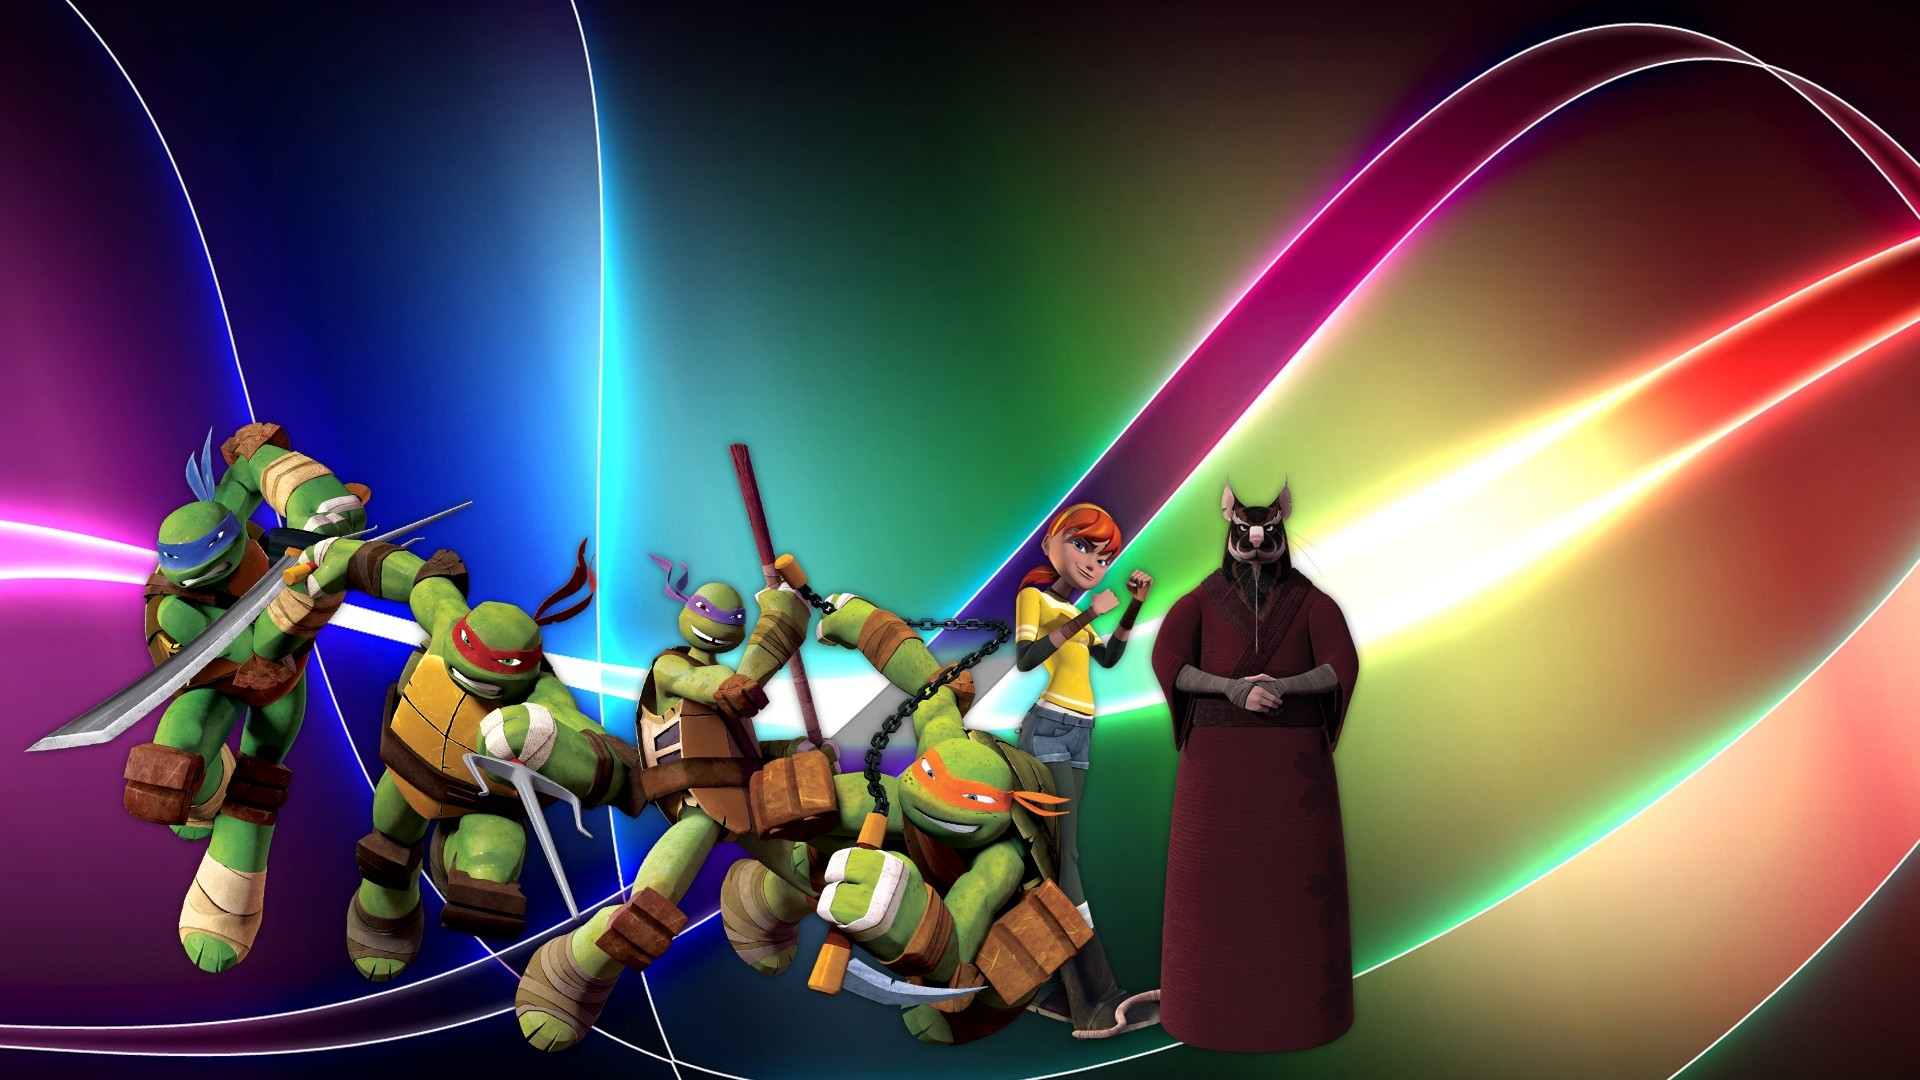 1920x1080 Images Download Best Tmnt Wallpapers HD.